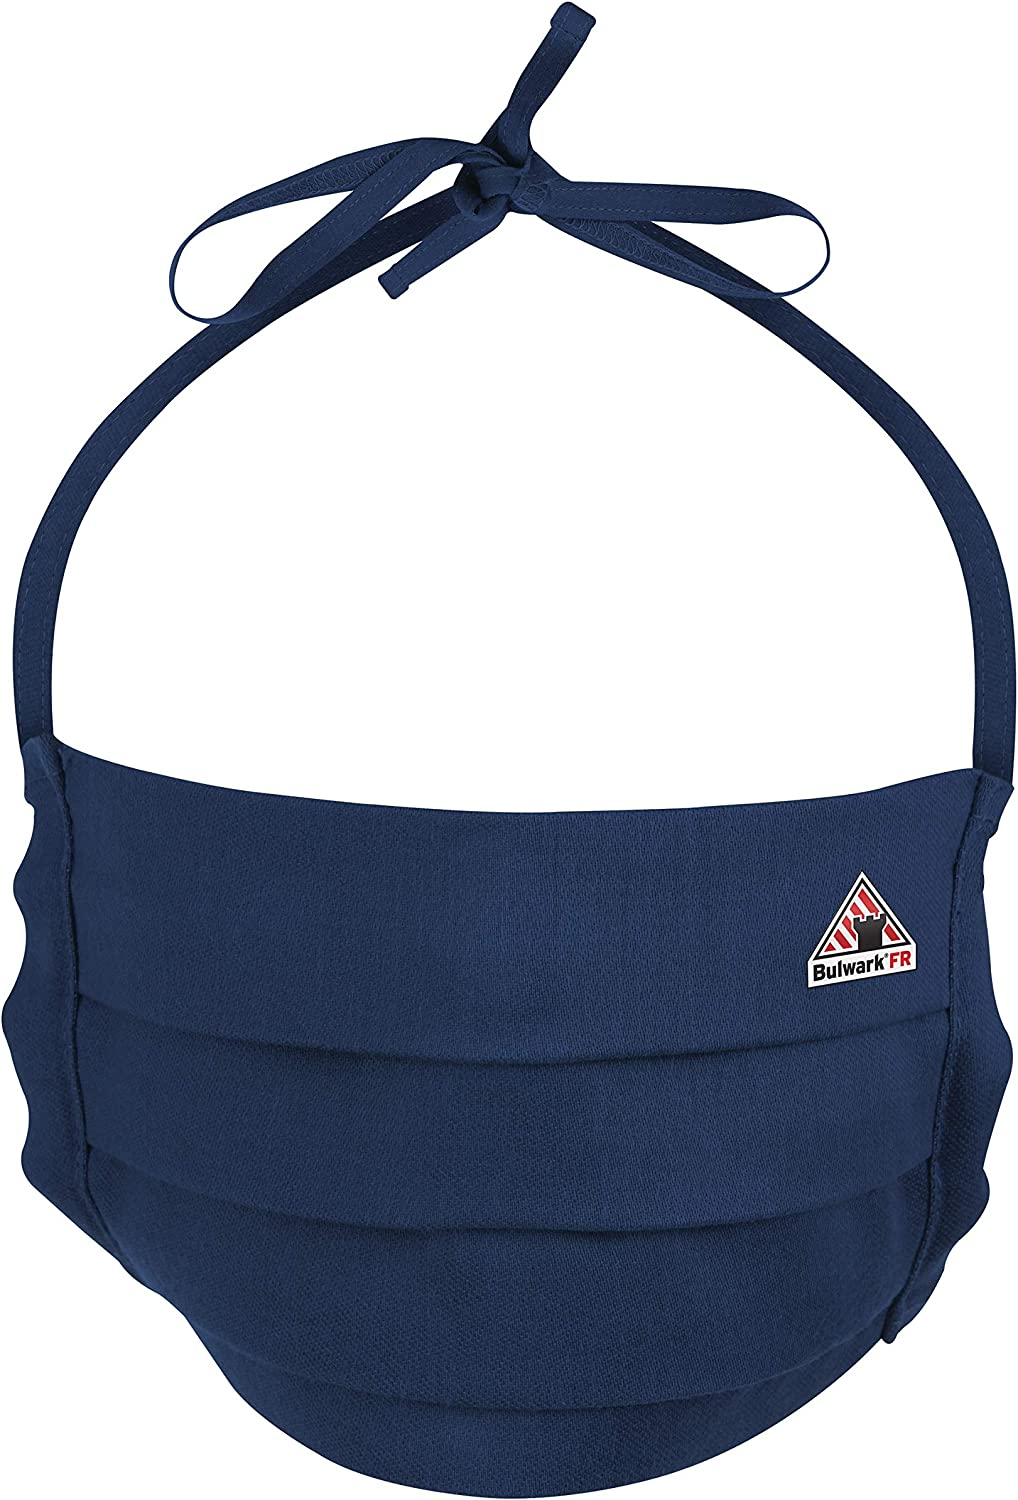 Bulwark FR Flame Resistant Face 5 Navy Coverings Brand Cheap Sale Venue Max 73% OFF Pack -